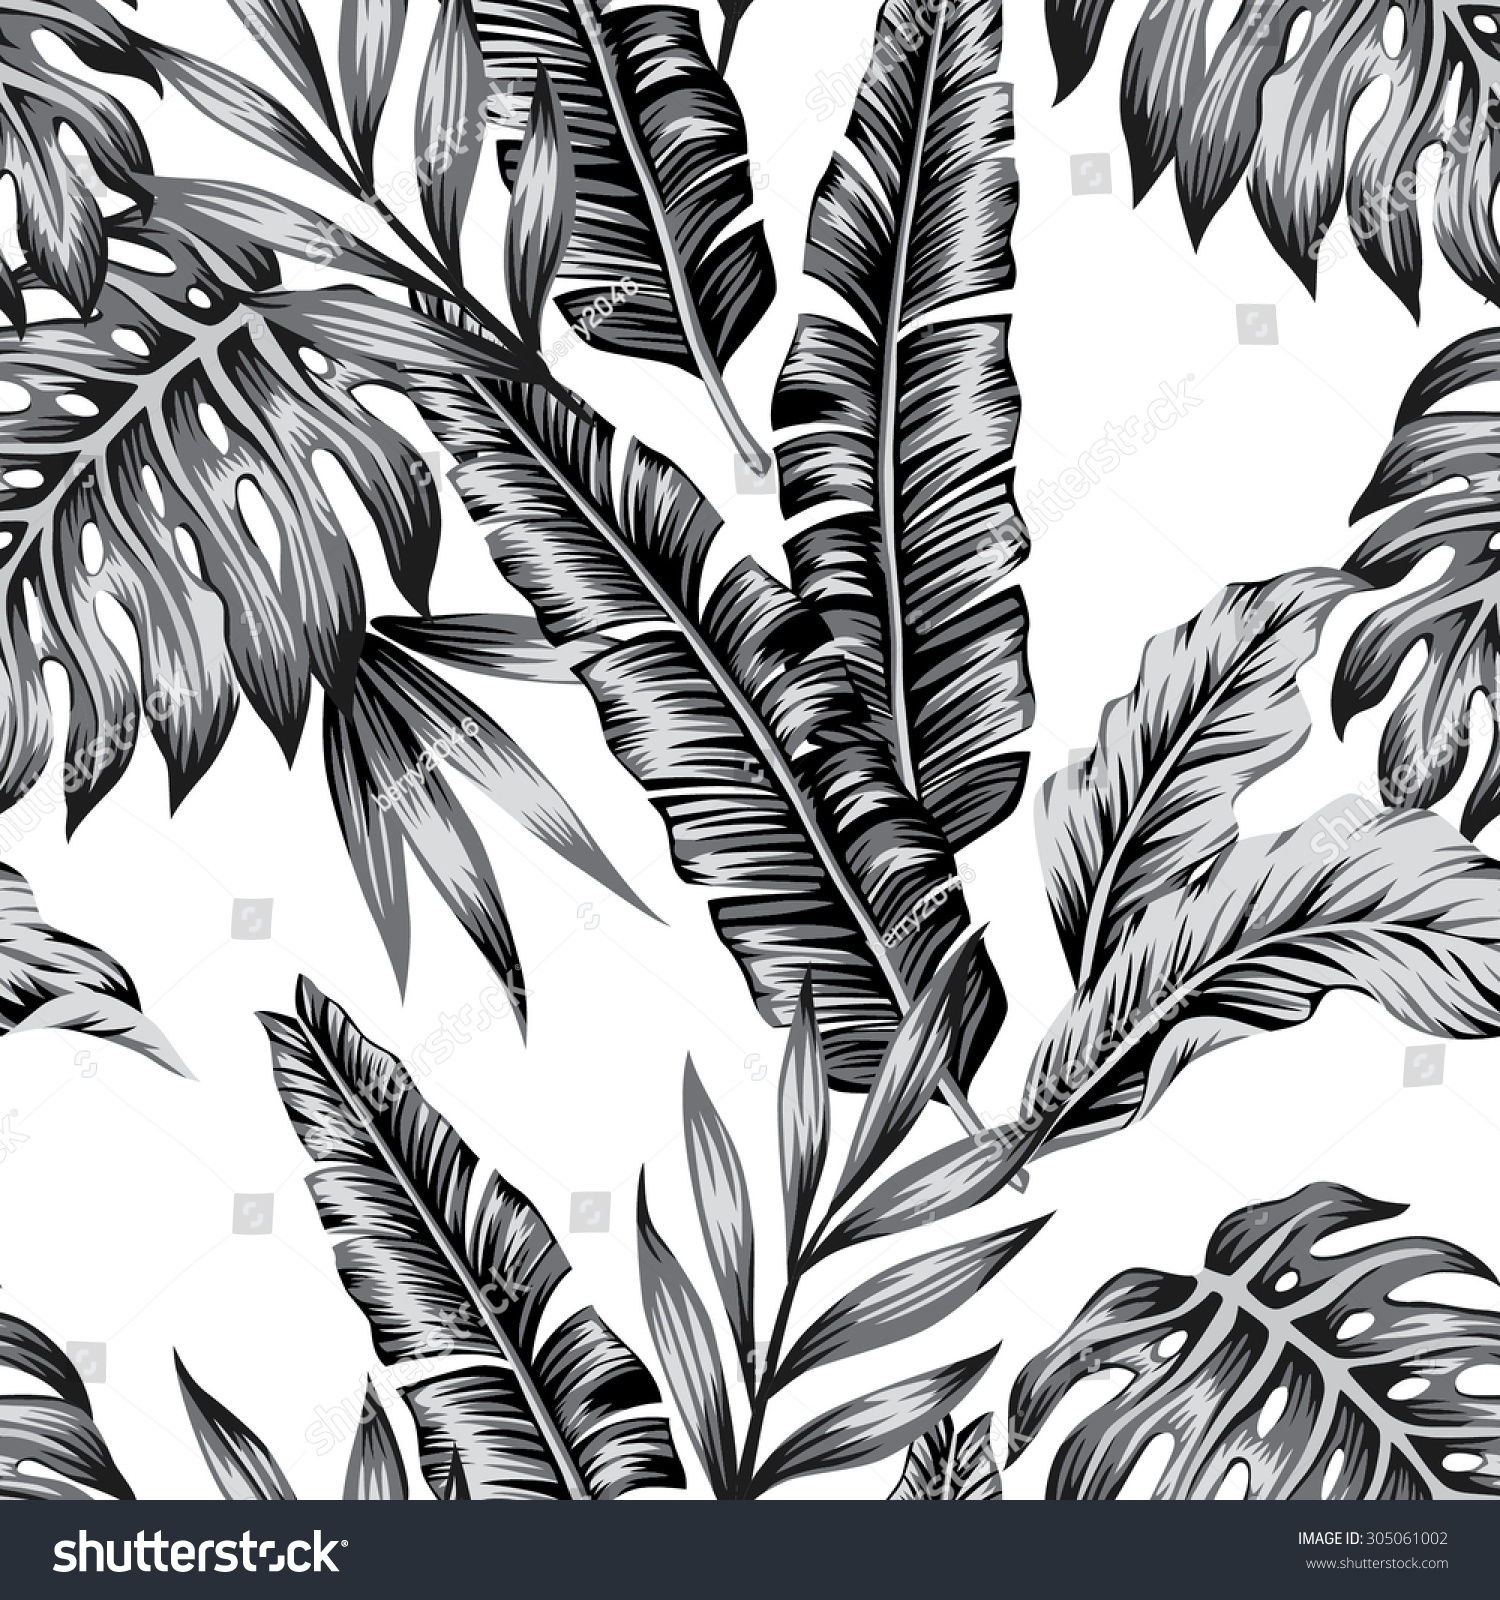 Tropic Plants Floral Seamless Jungle Pattern Print Vector Background Of Fashion Summer Wallpaper Palm Banana